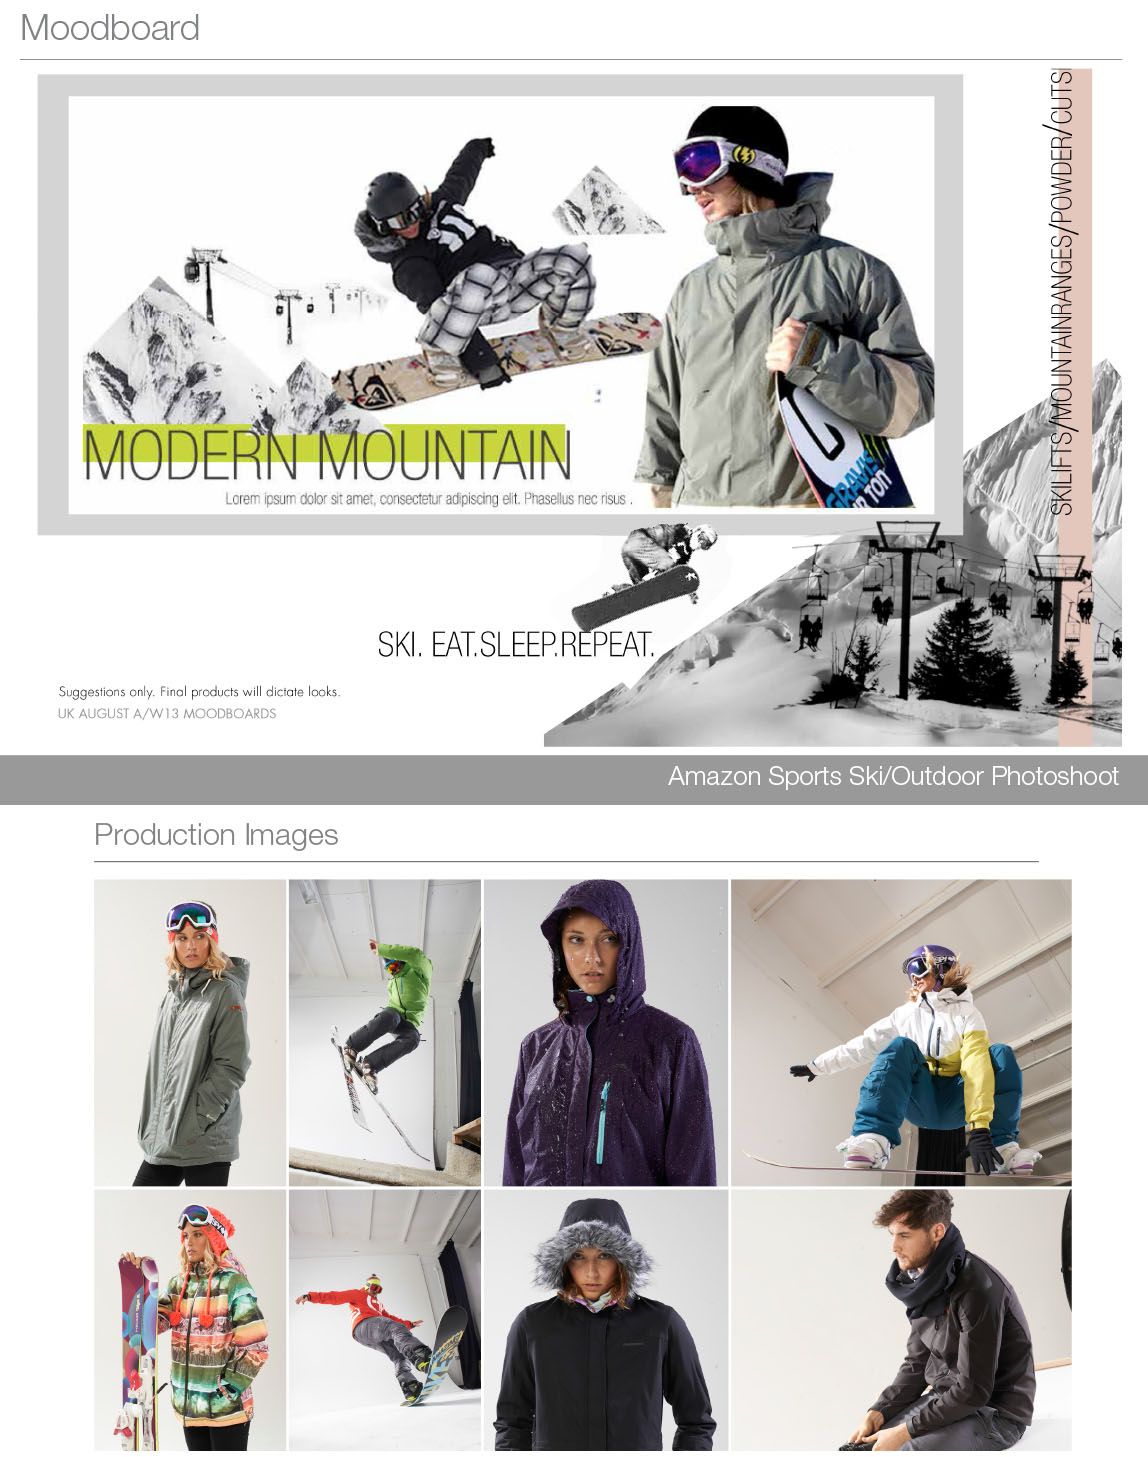 Amazon Ski & Snow Gear Guide Moodboard